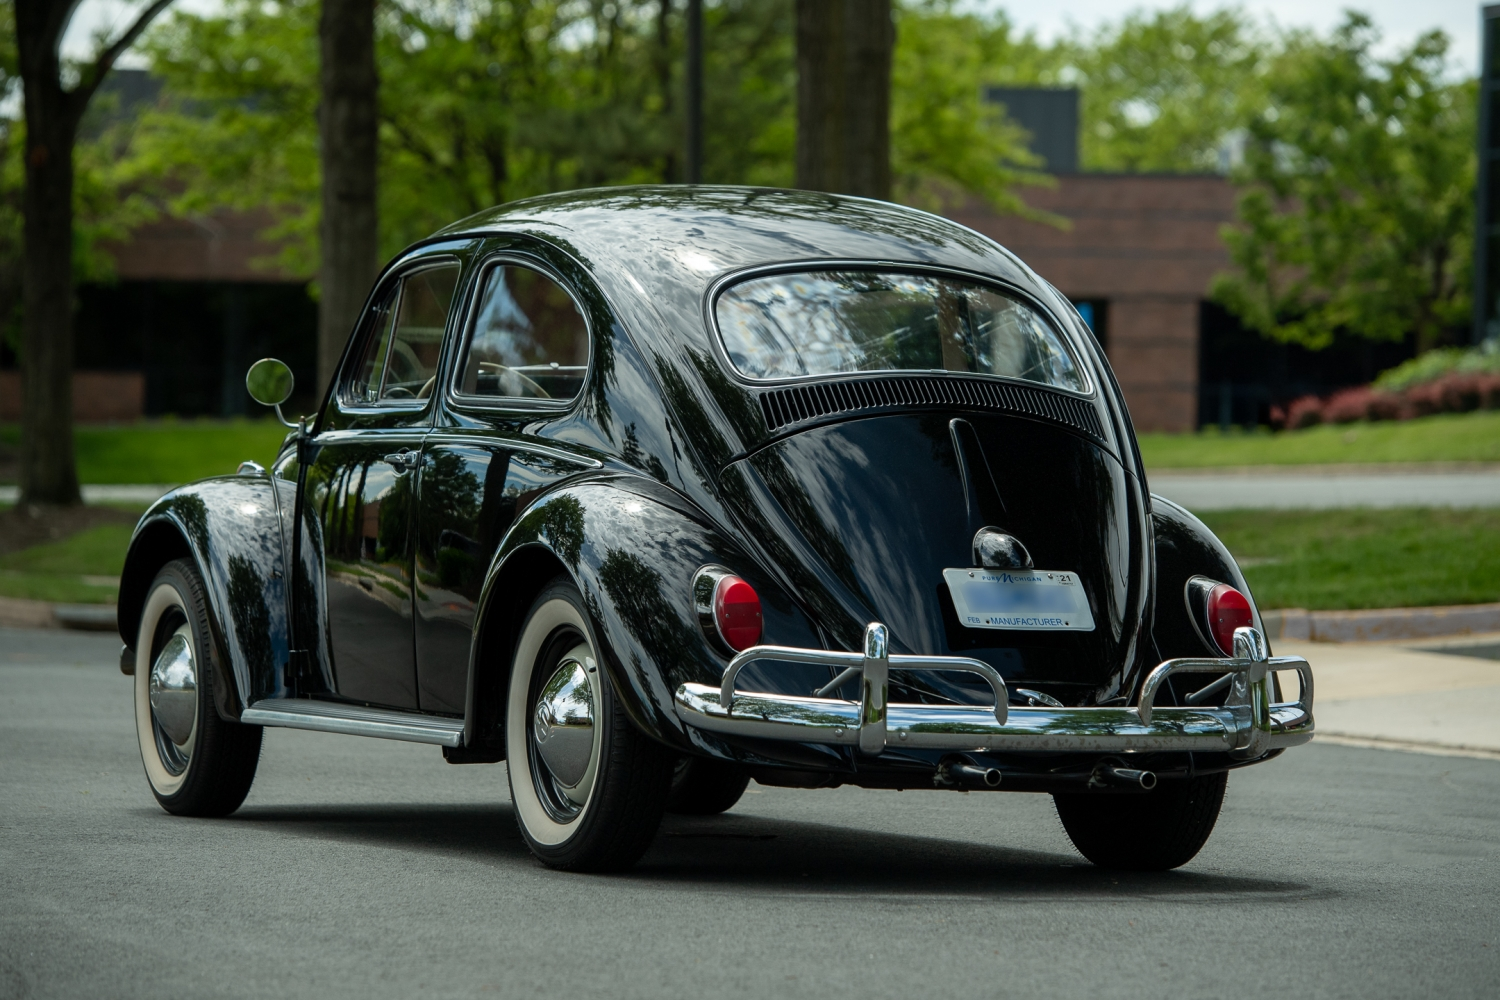 The_Volkswagen_Max_Beetle-Small-11993